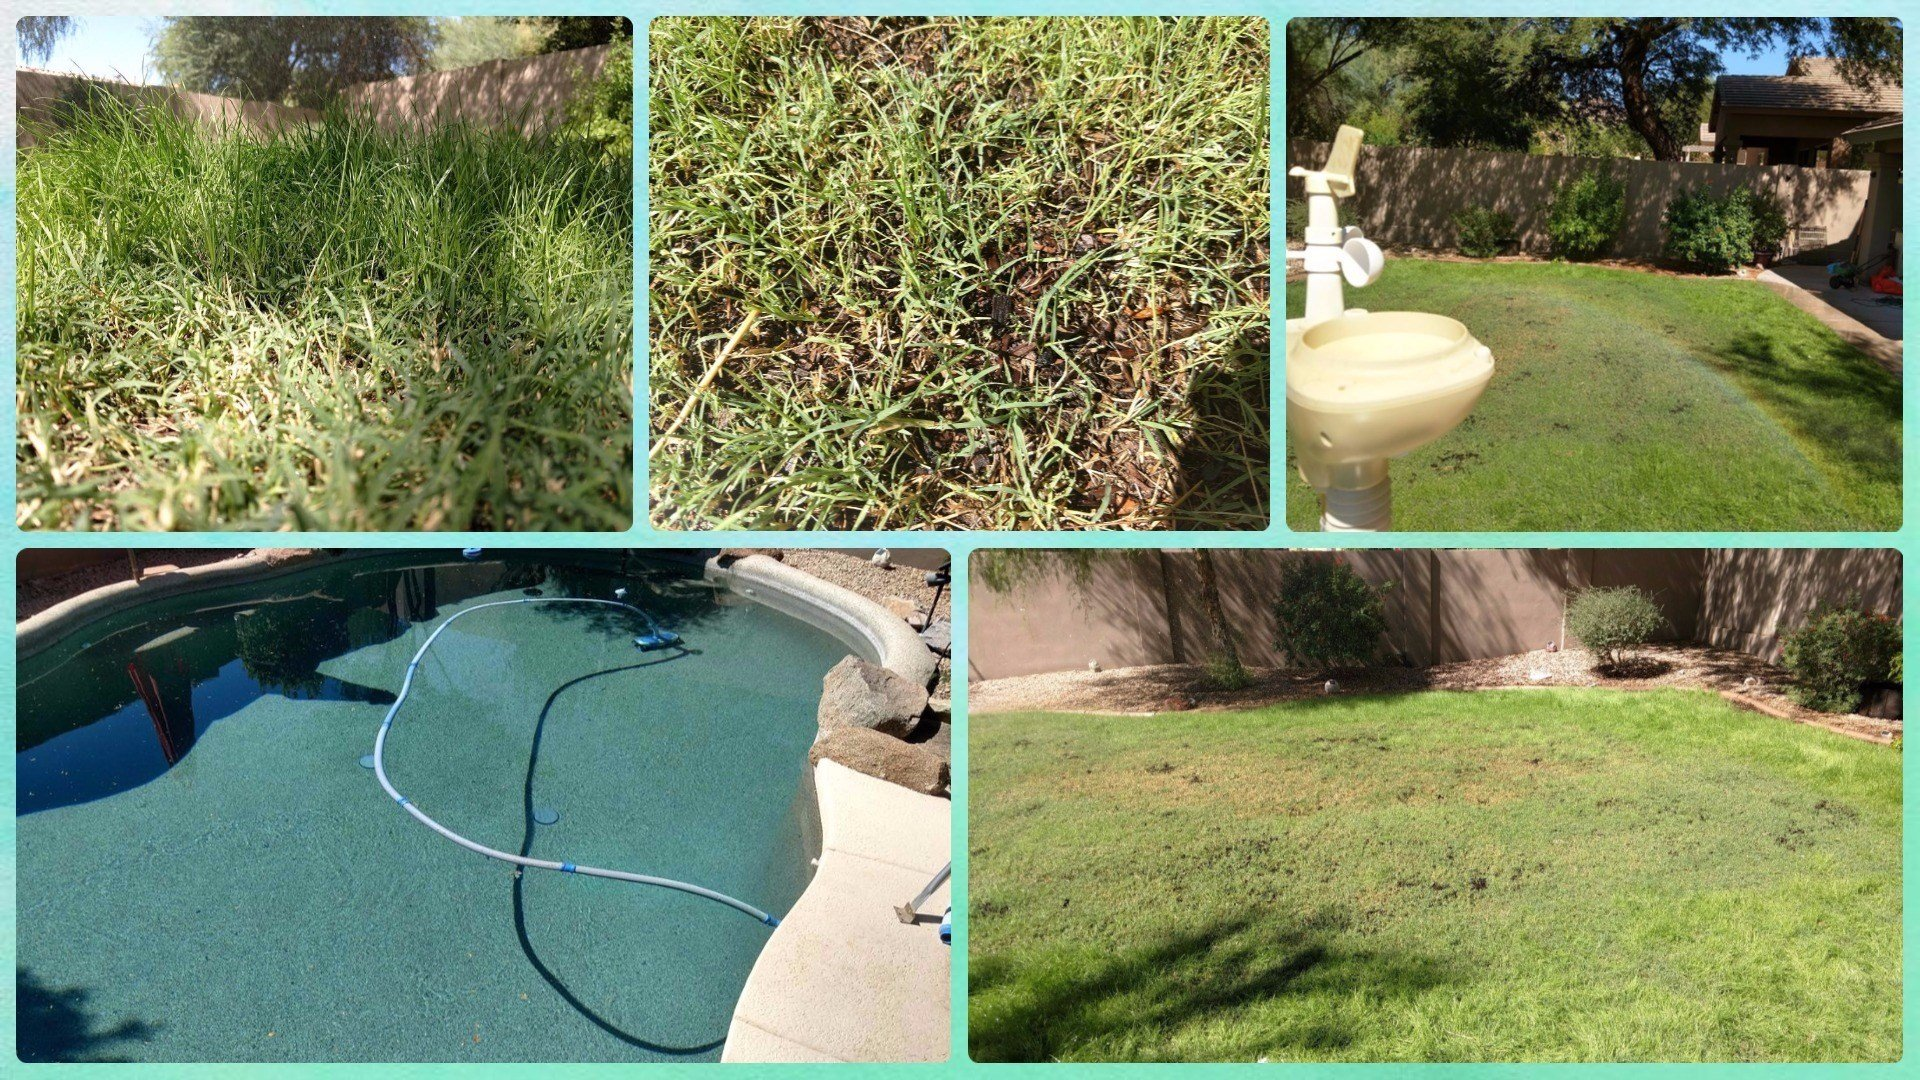 Pool Water Is Too Cold Time For Rye Grass Hawaii News Now Kgmb And Khnl